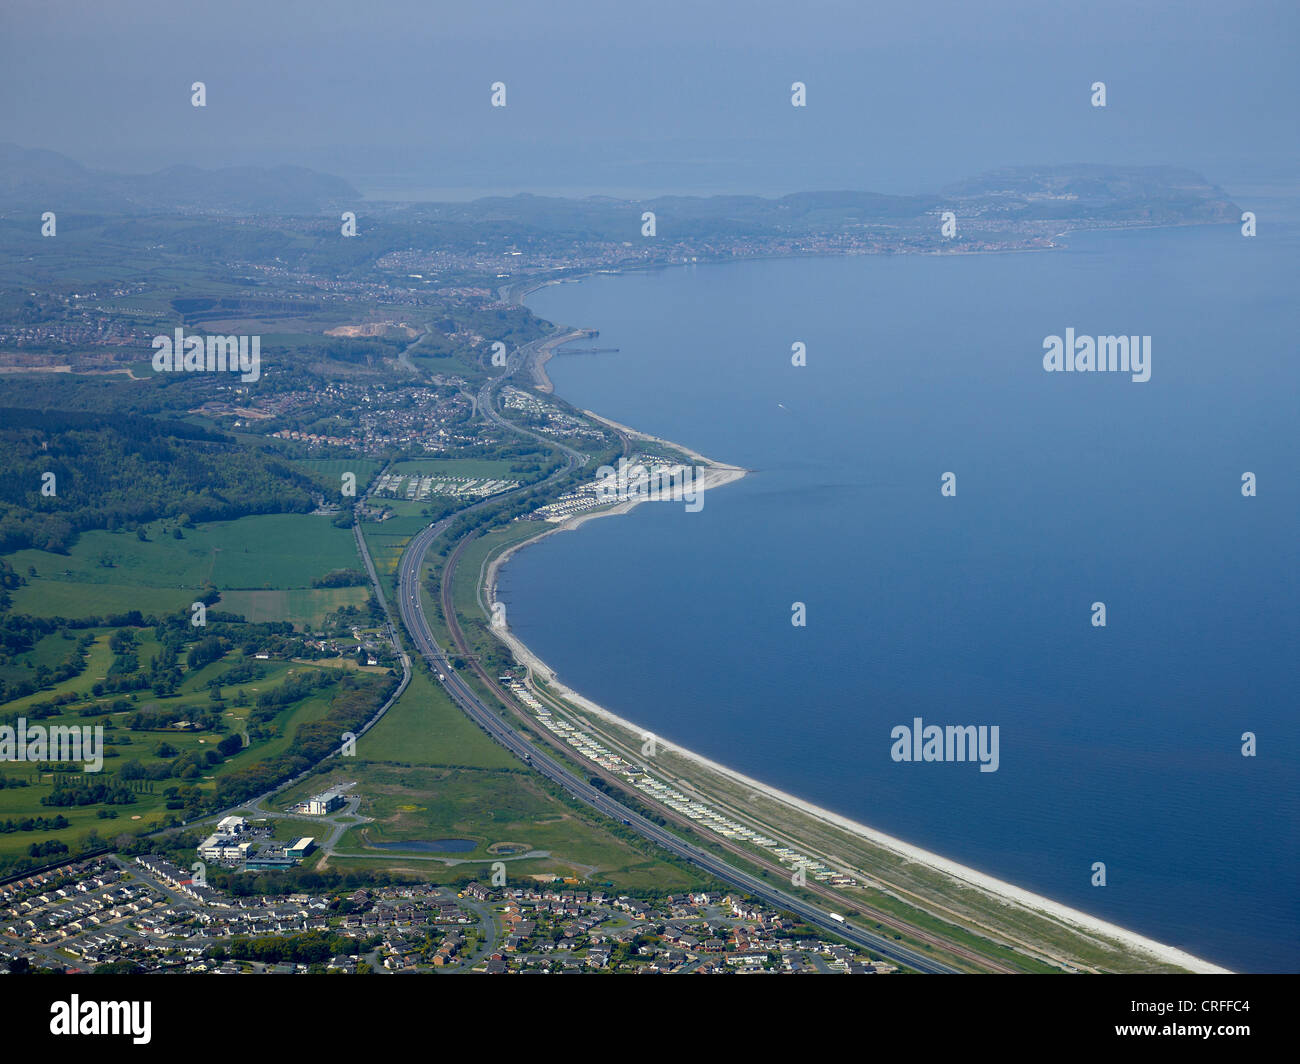 North Wales Coast nr Abergele, looking towards Colwyn Bay, showing the A55 and Great Orme in the distance - Stock Image